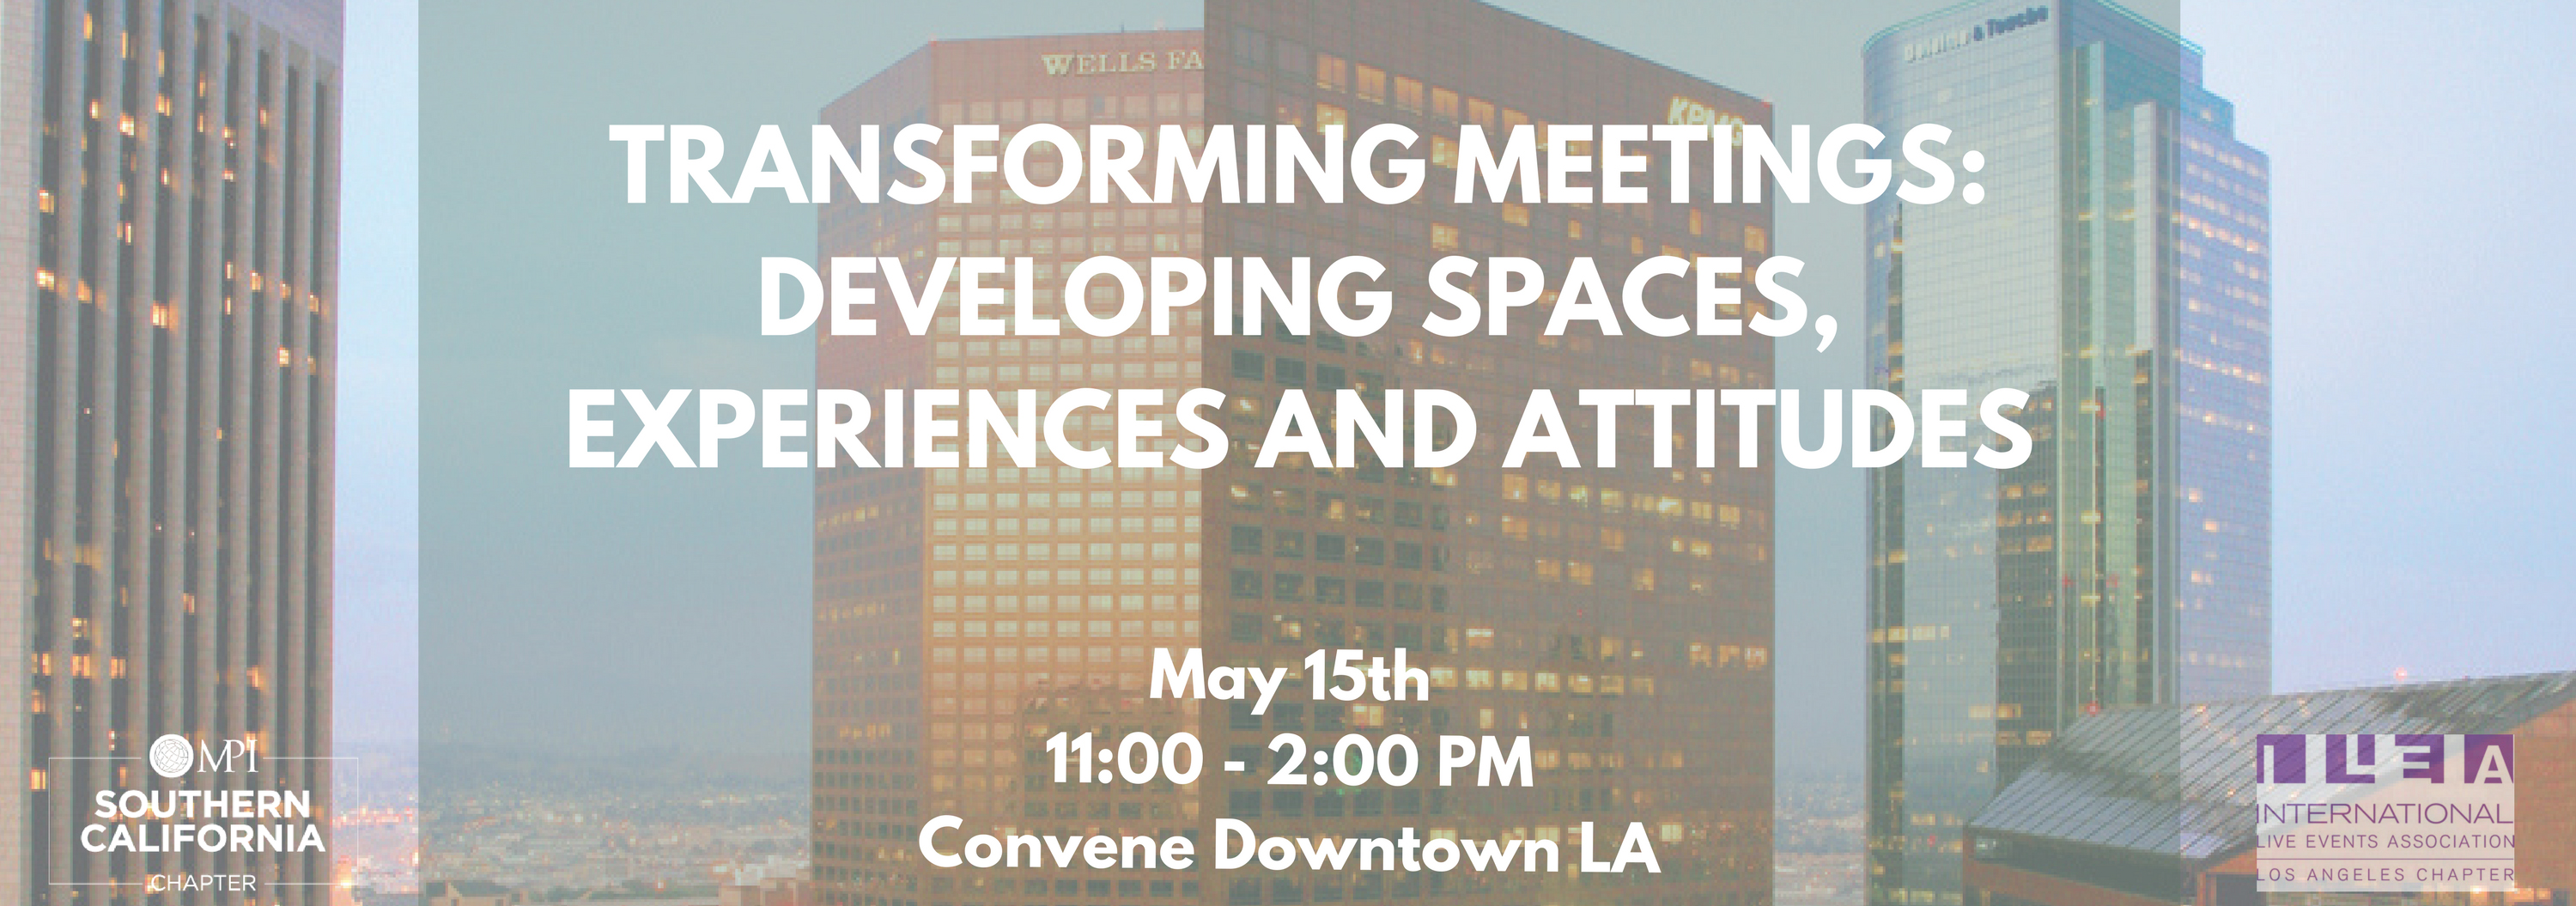 Transforming Meetings: Developing Spaces, Experiences and Attitudes